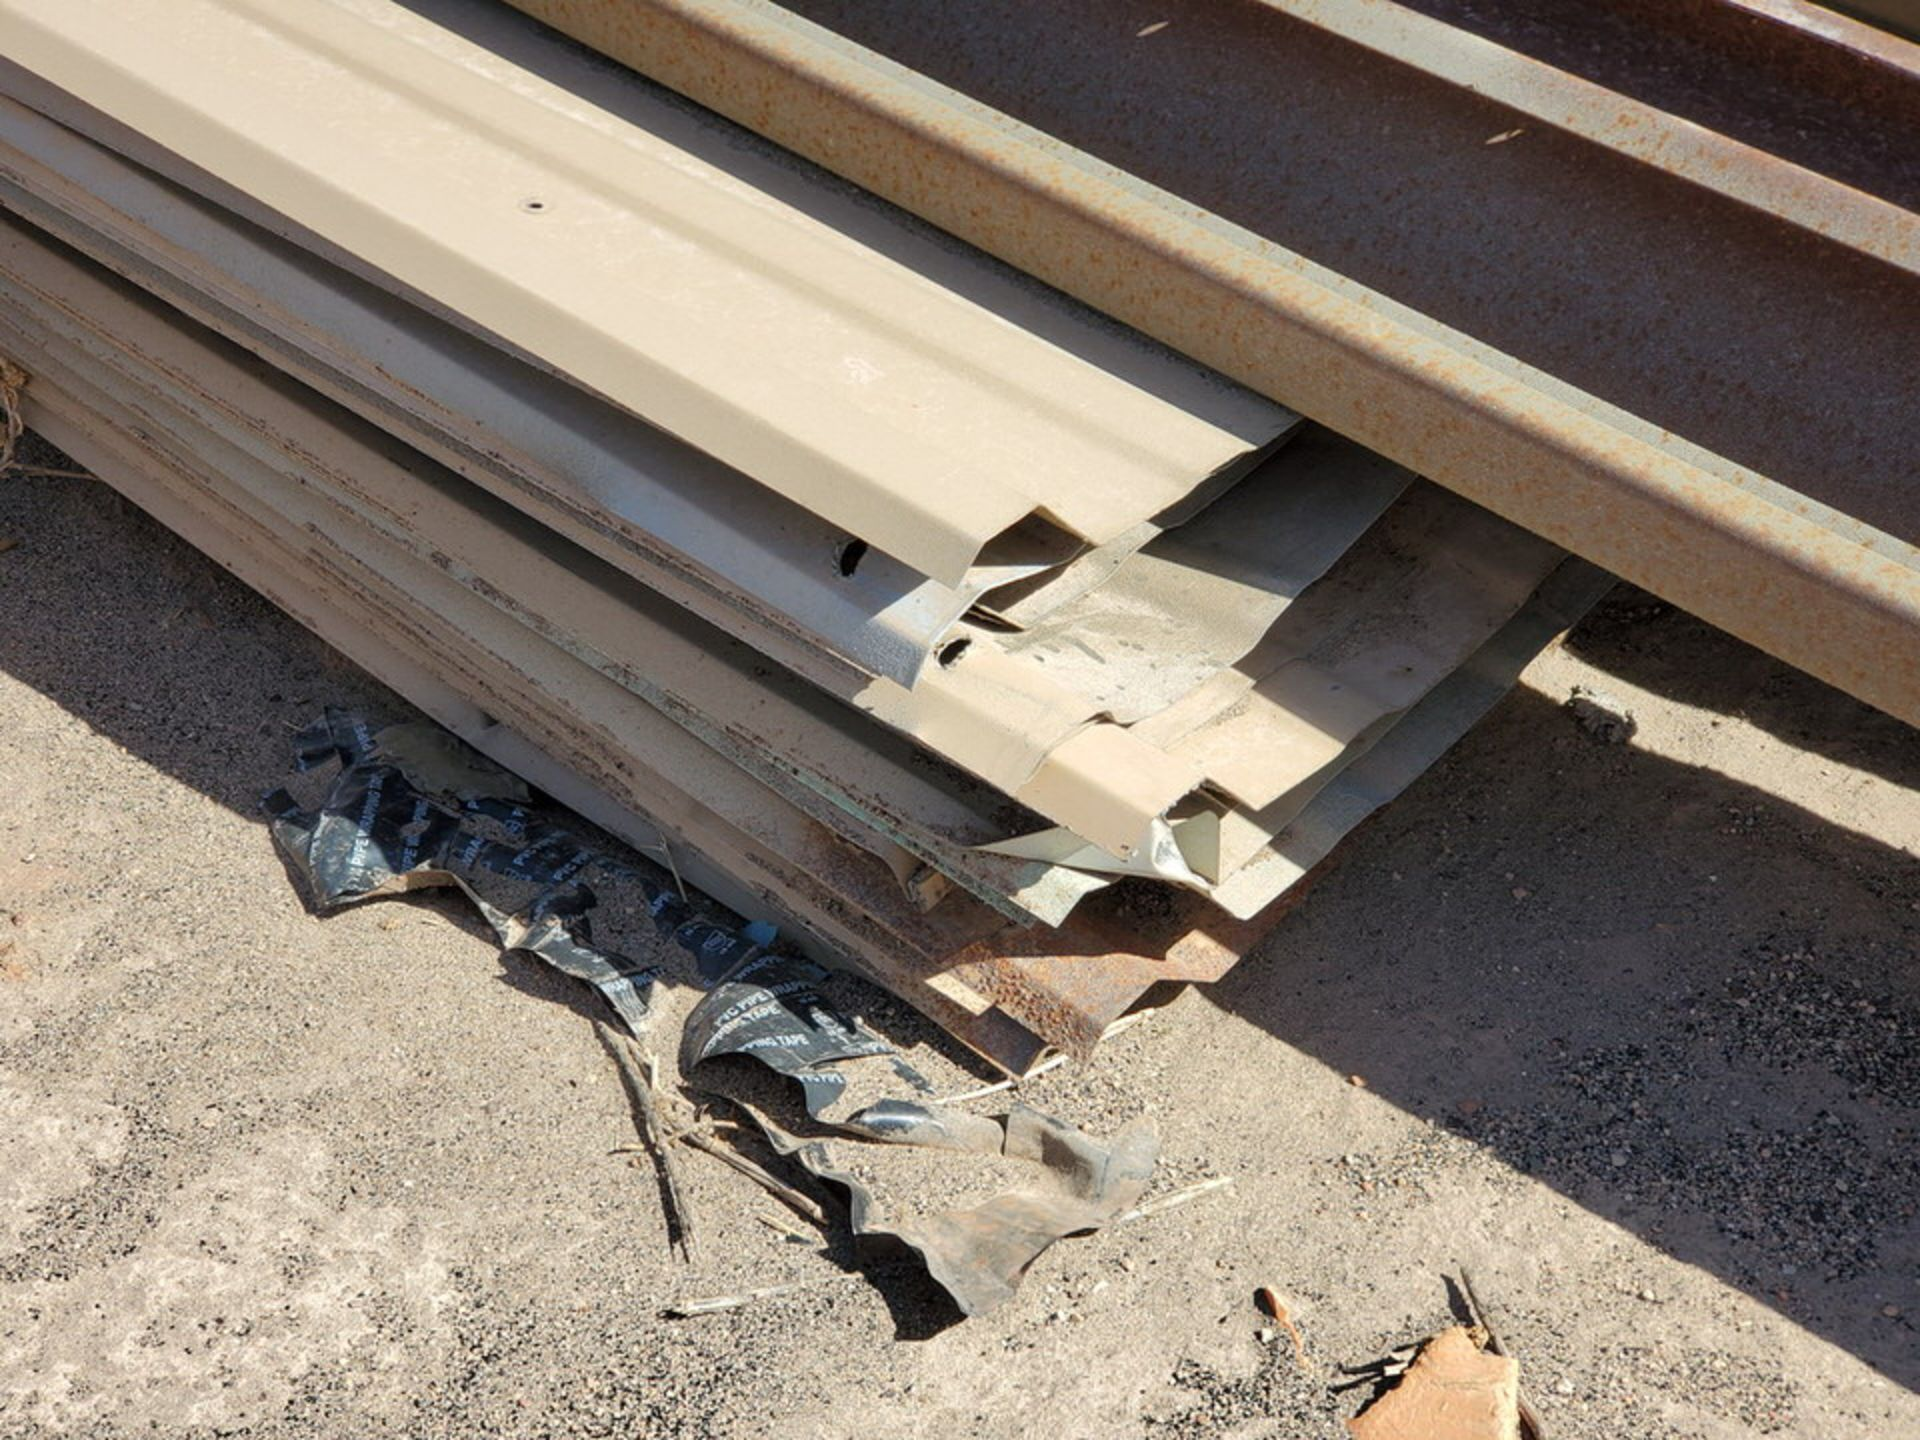 Assorted Material To Include But Not Limited To: Roller, Siding, Channel, Sq. Tubing, etc. - Image 7 of 10